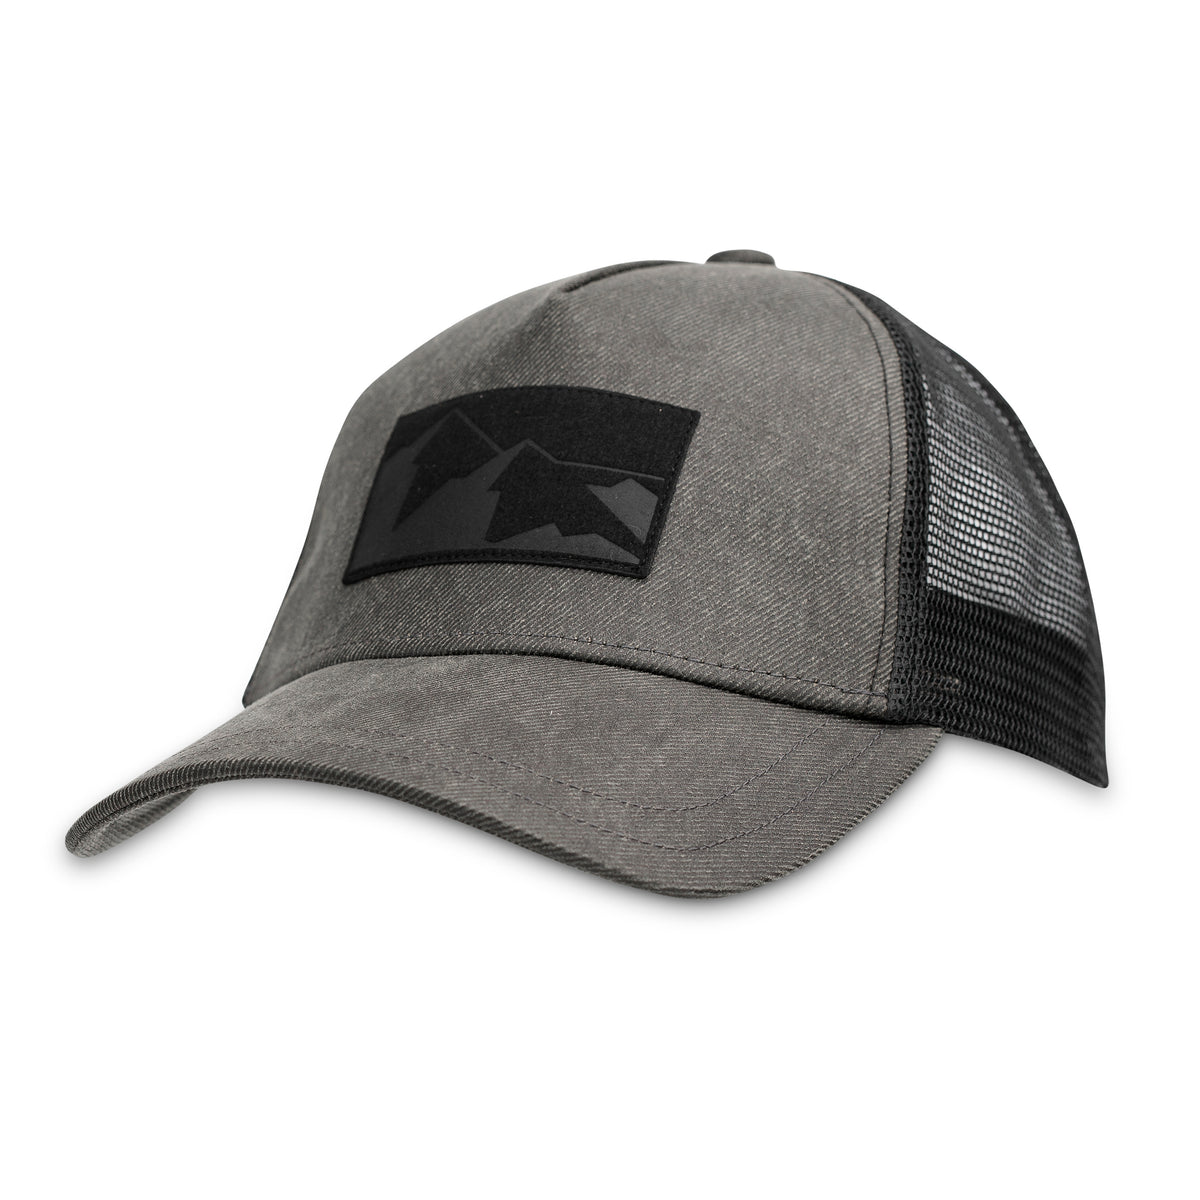 Pistil Men's PEAK Trucker Hat